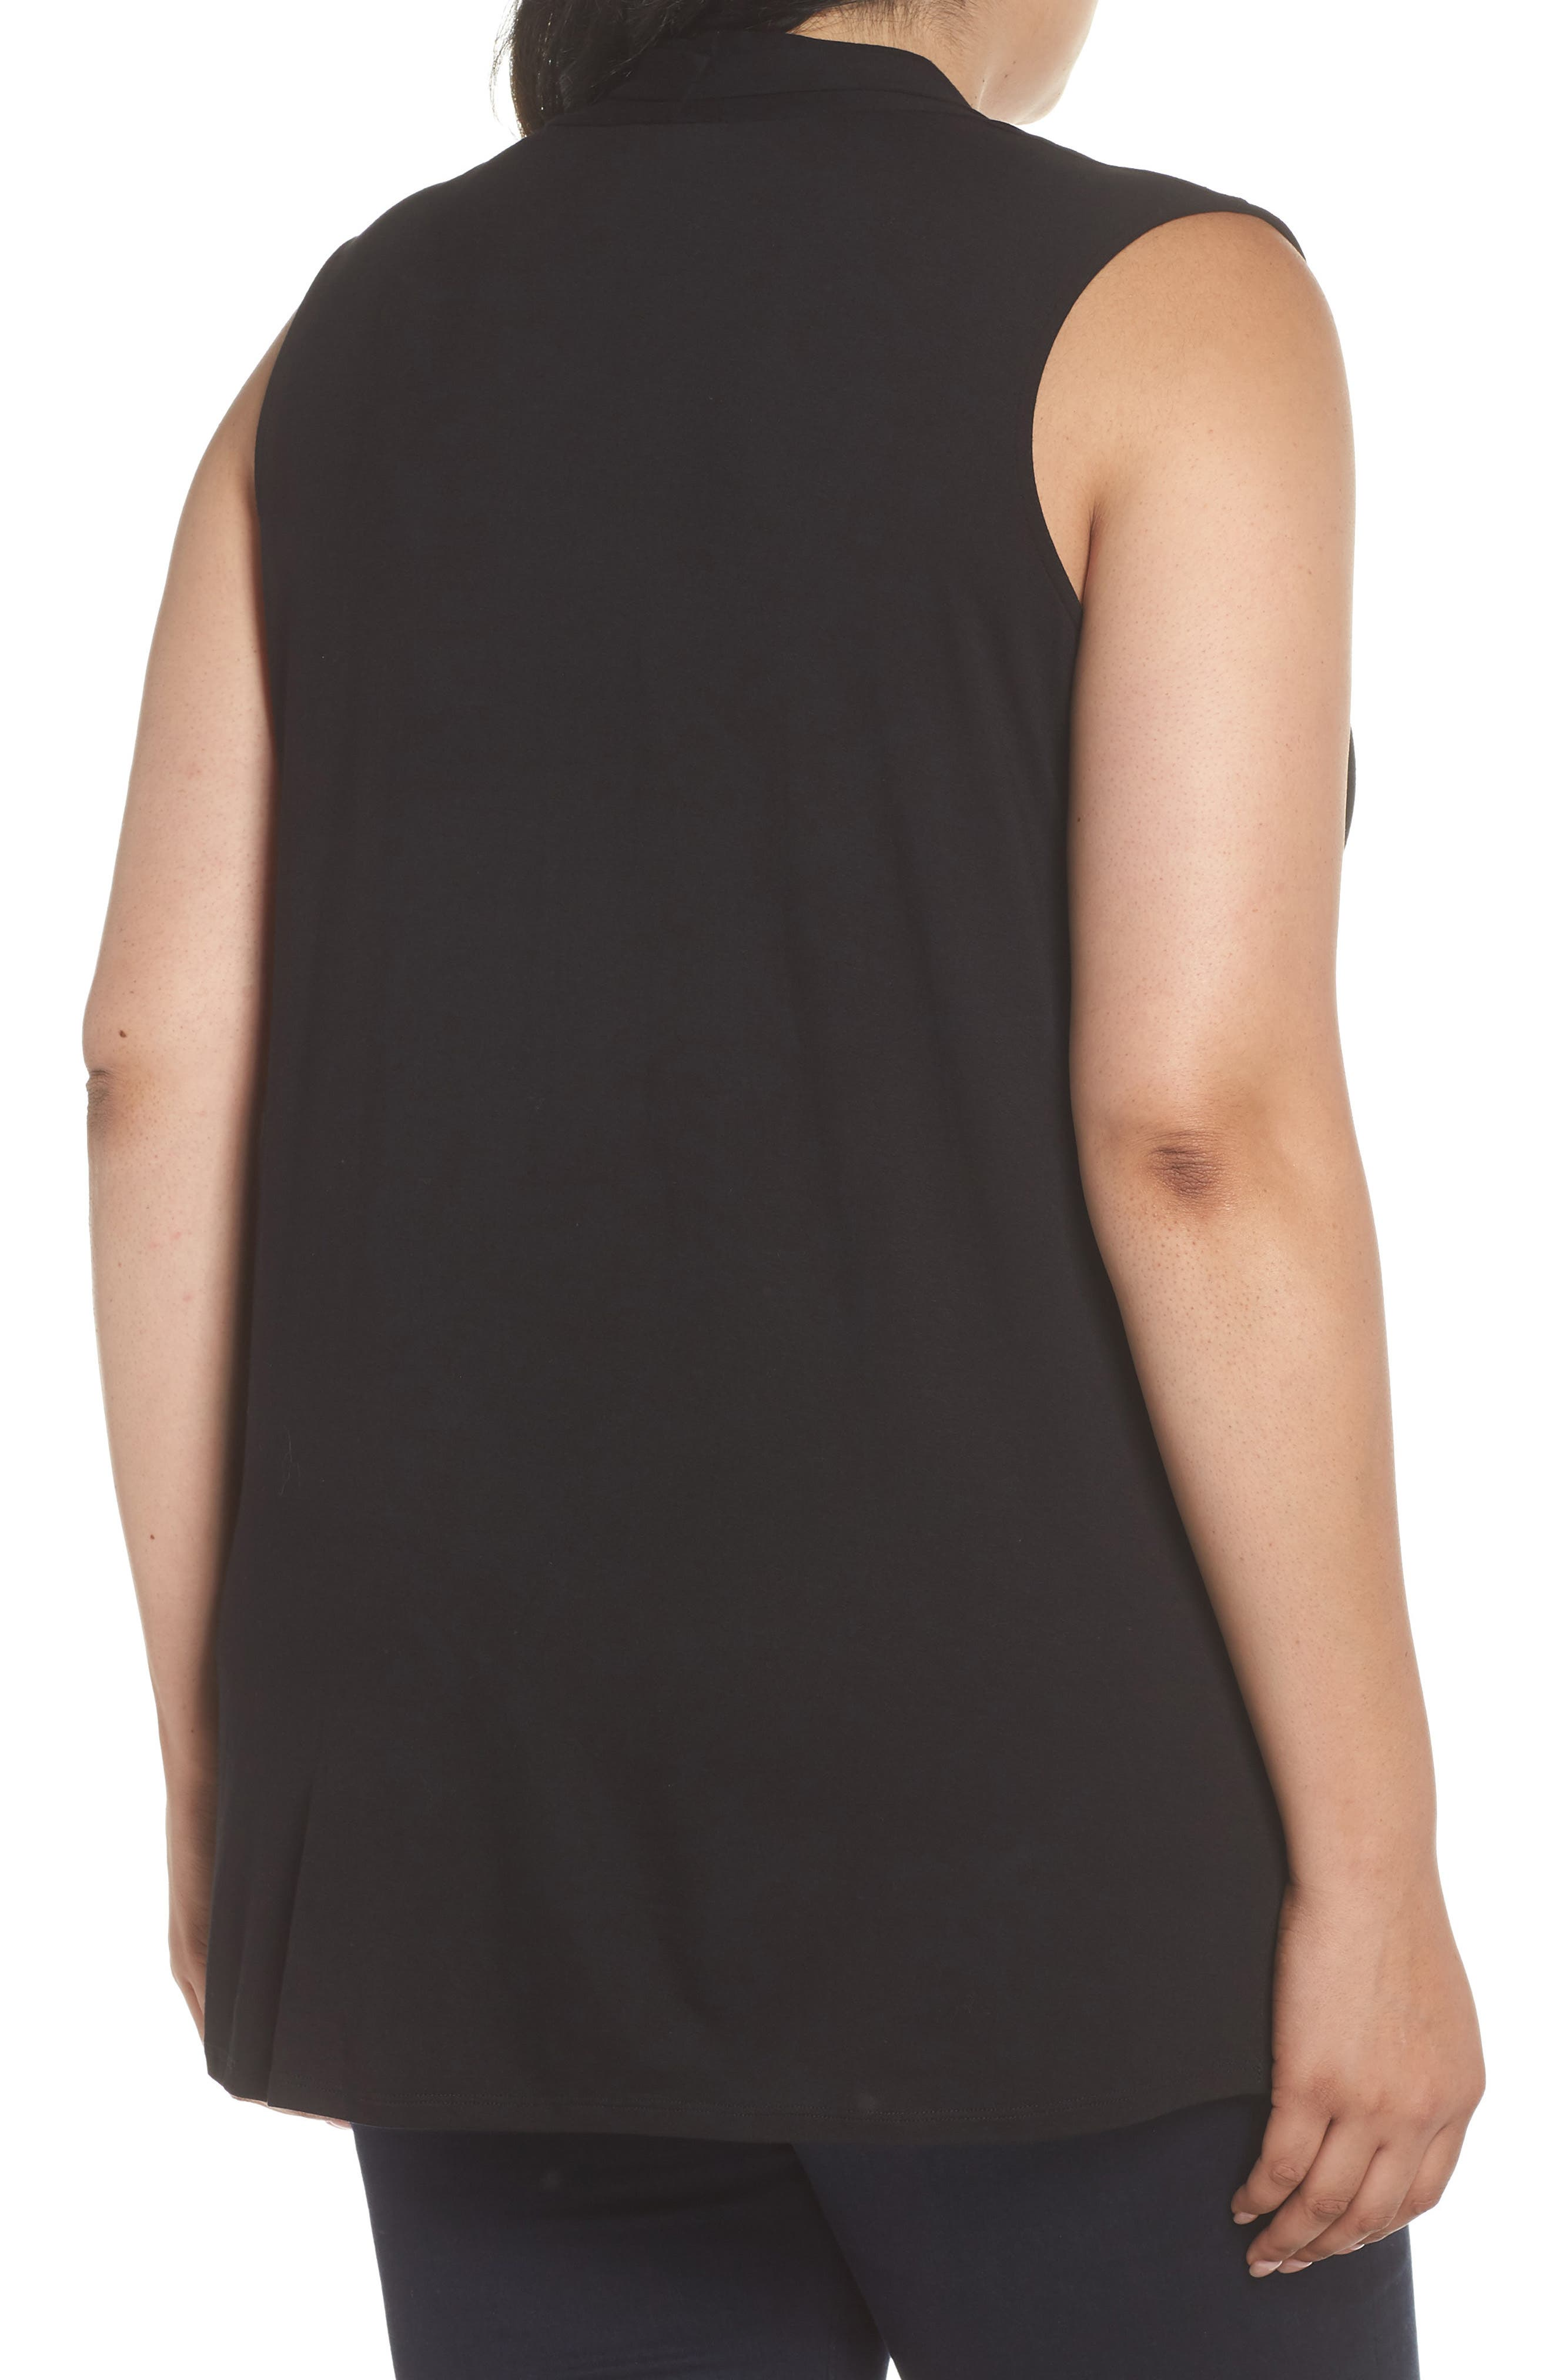 VINCE CAMUTO, Sleeveless V-Neck Knit Blouse, Alternate thumbnail 2, color, RICH BLACK